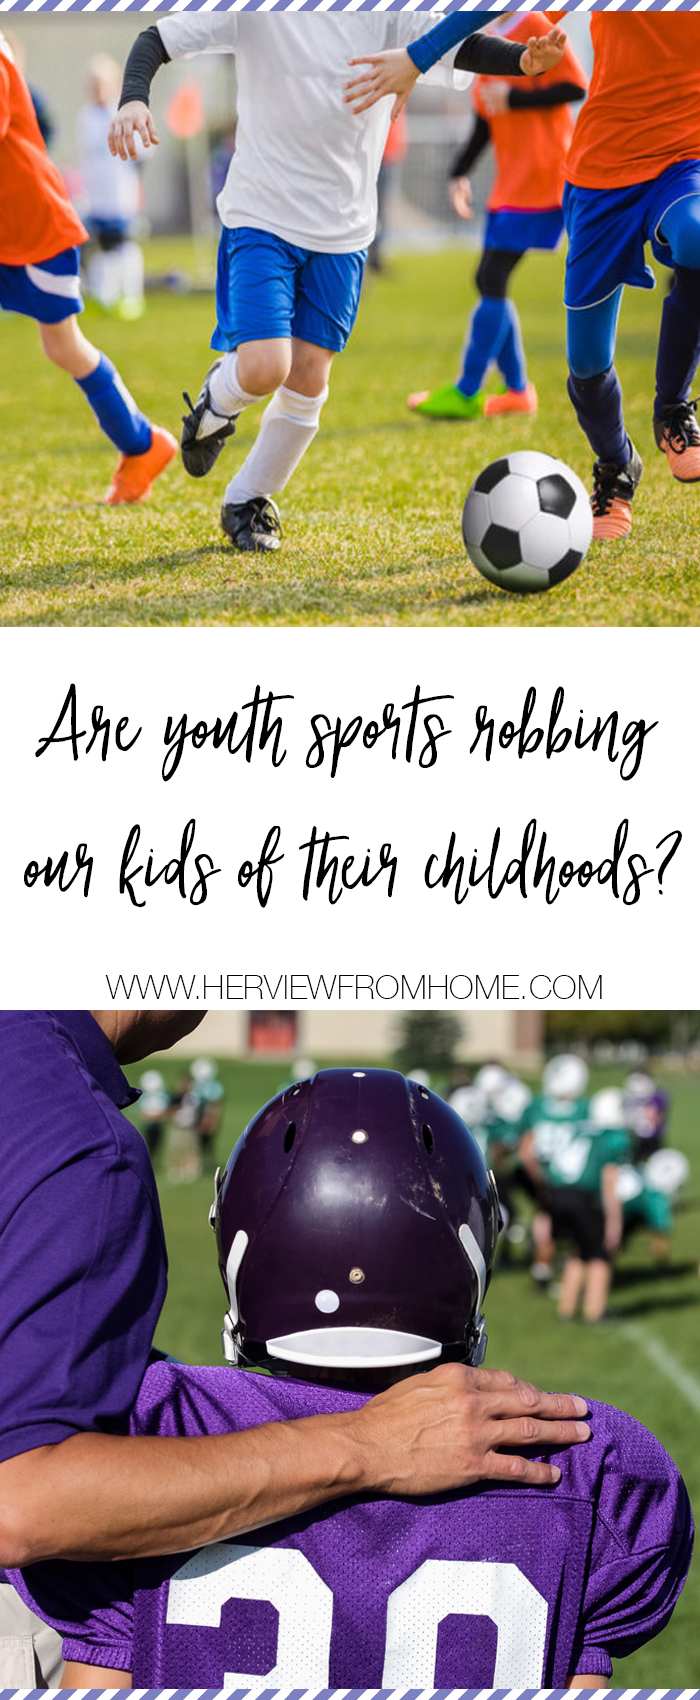 Are Youth Sports Robbing Our Kids of Their Childhoods? www.herviewfromhome.com